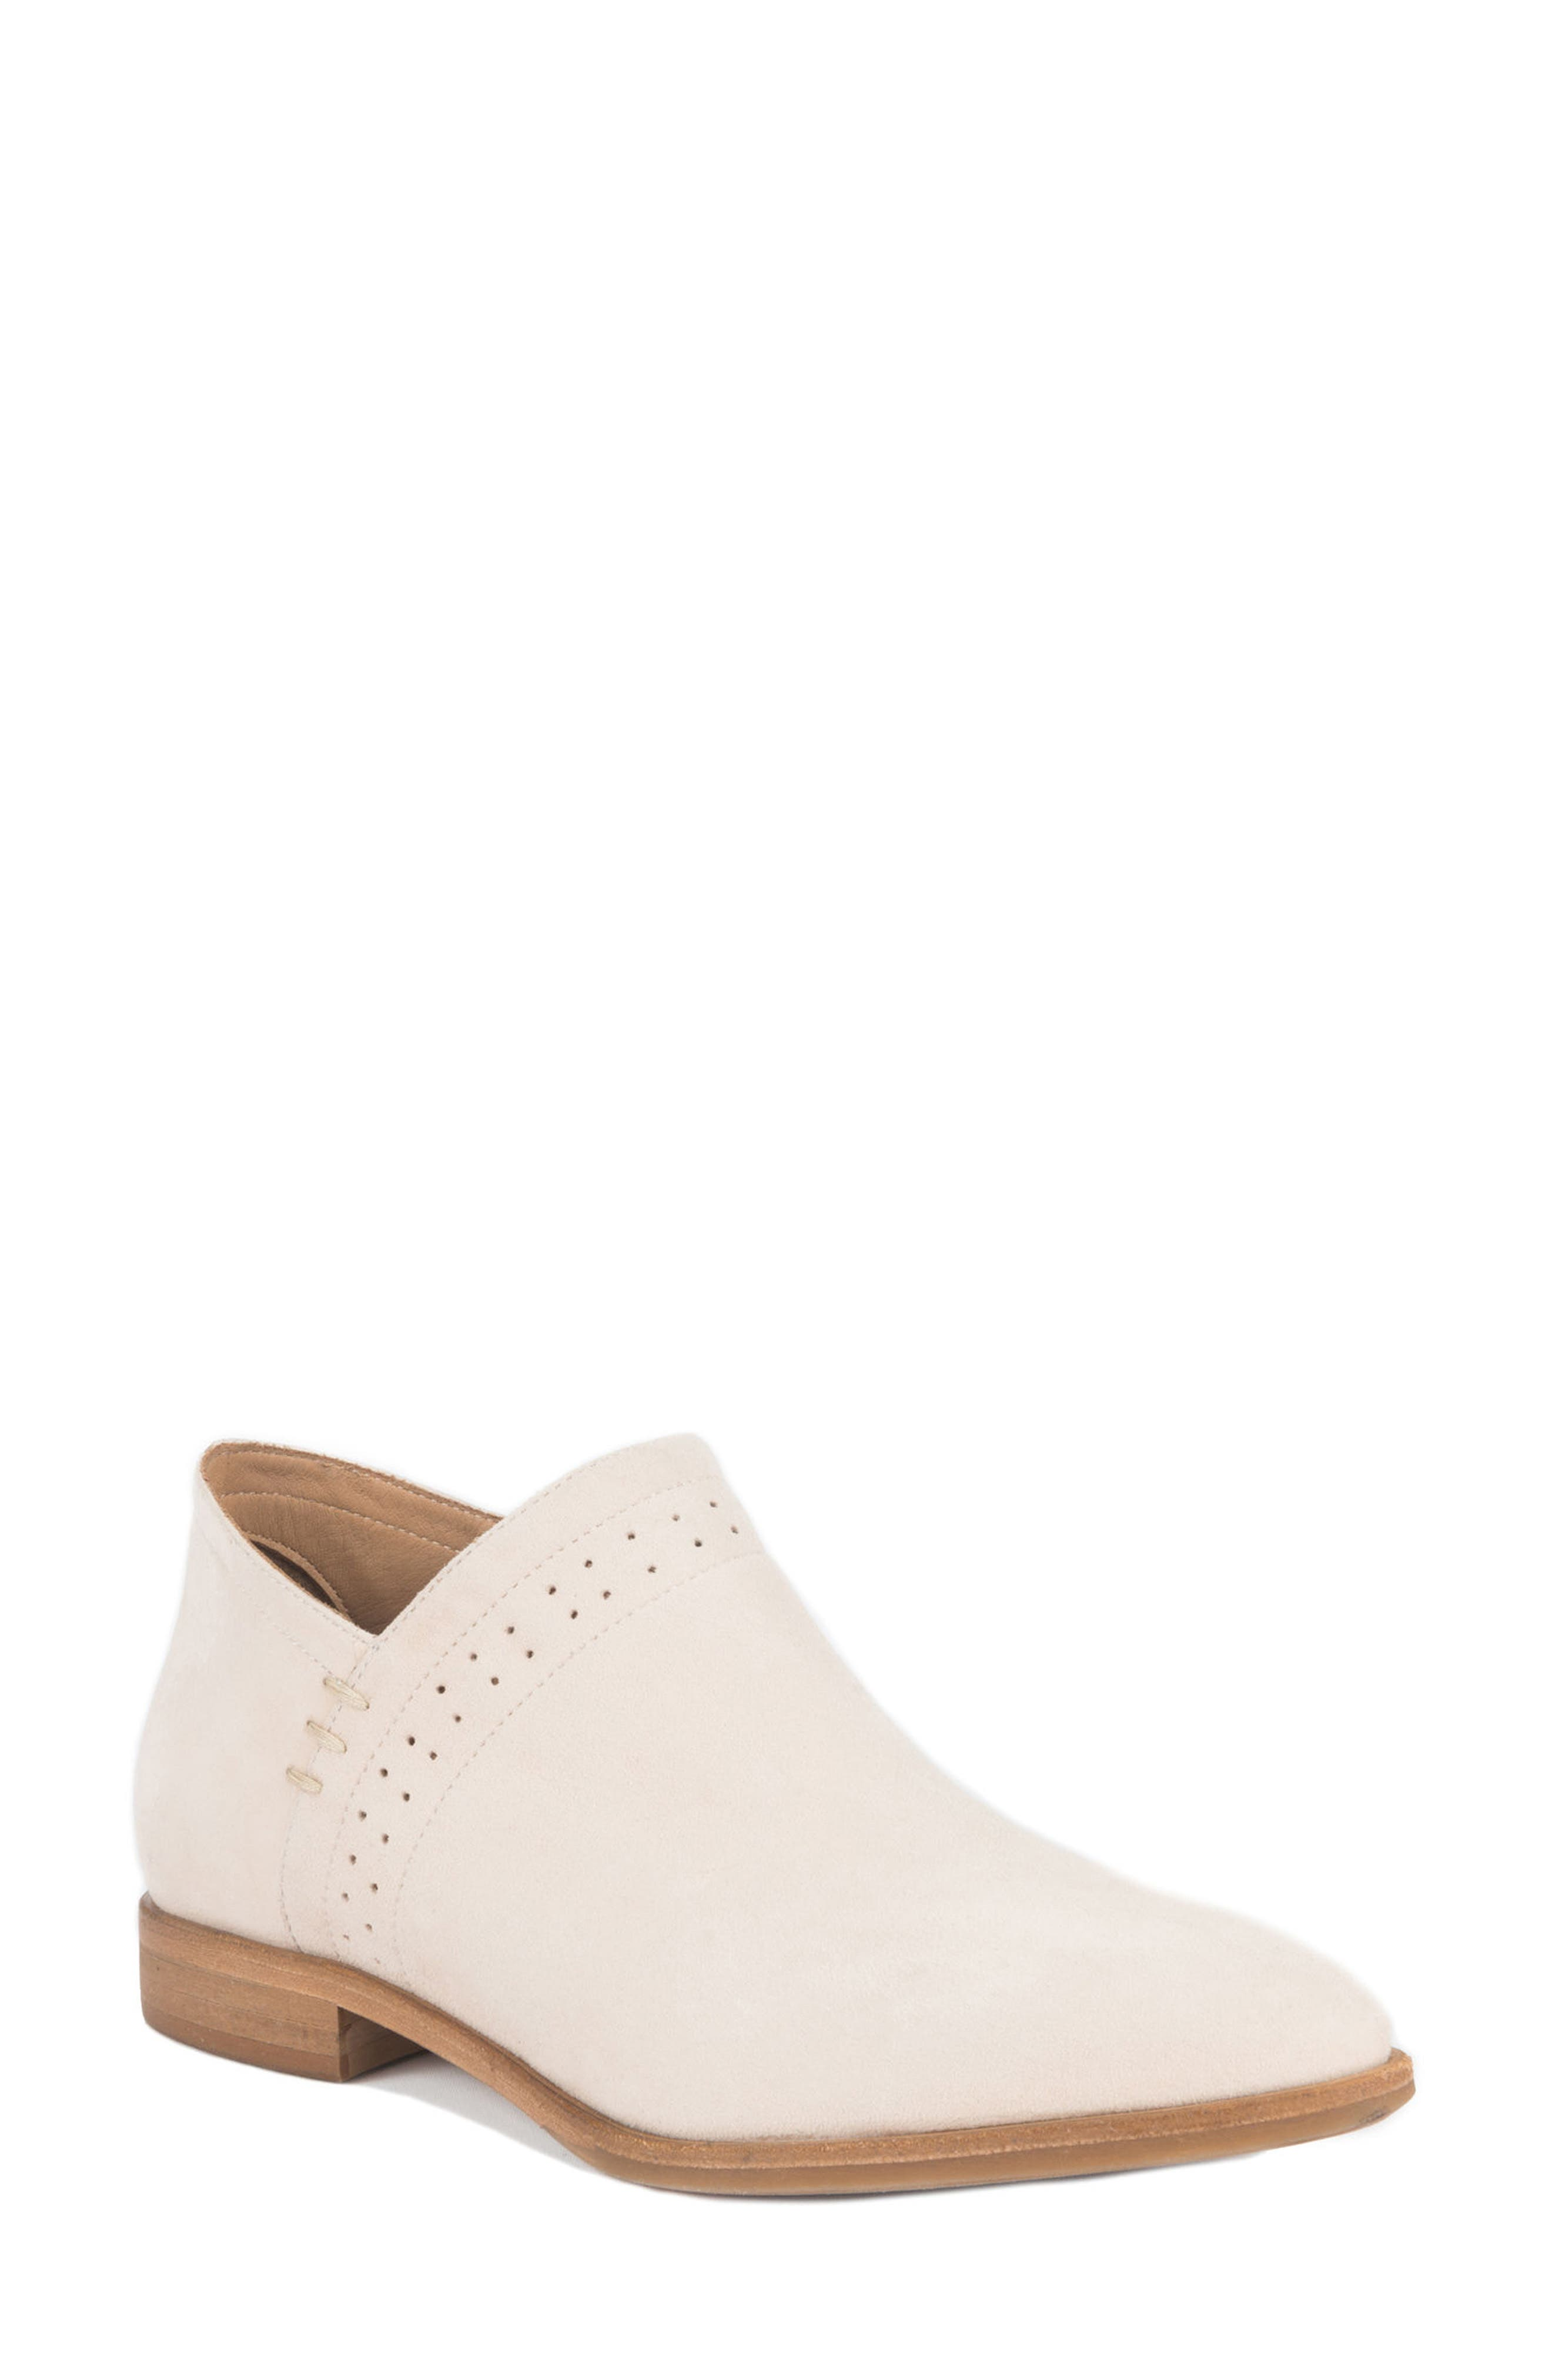 Florence Water Resistant Bootie,                         Main,                         color, 250